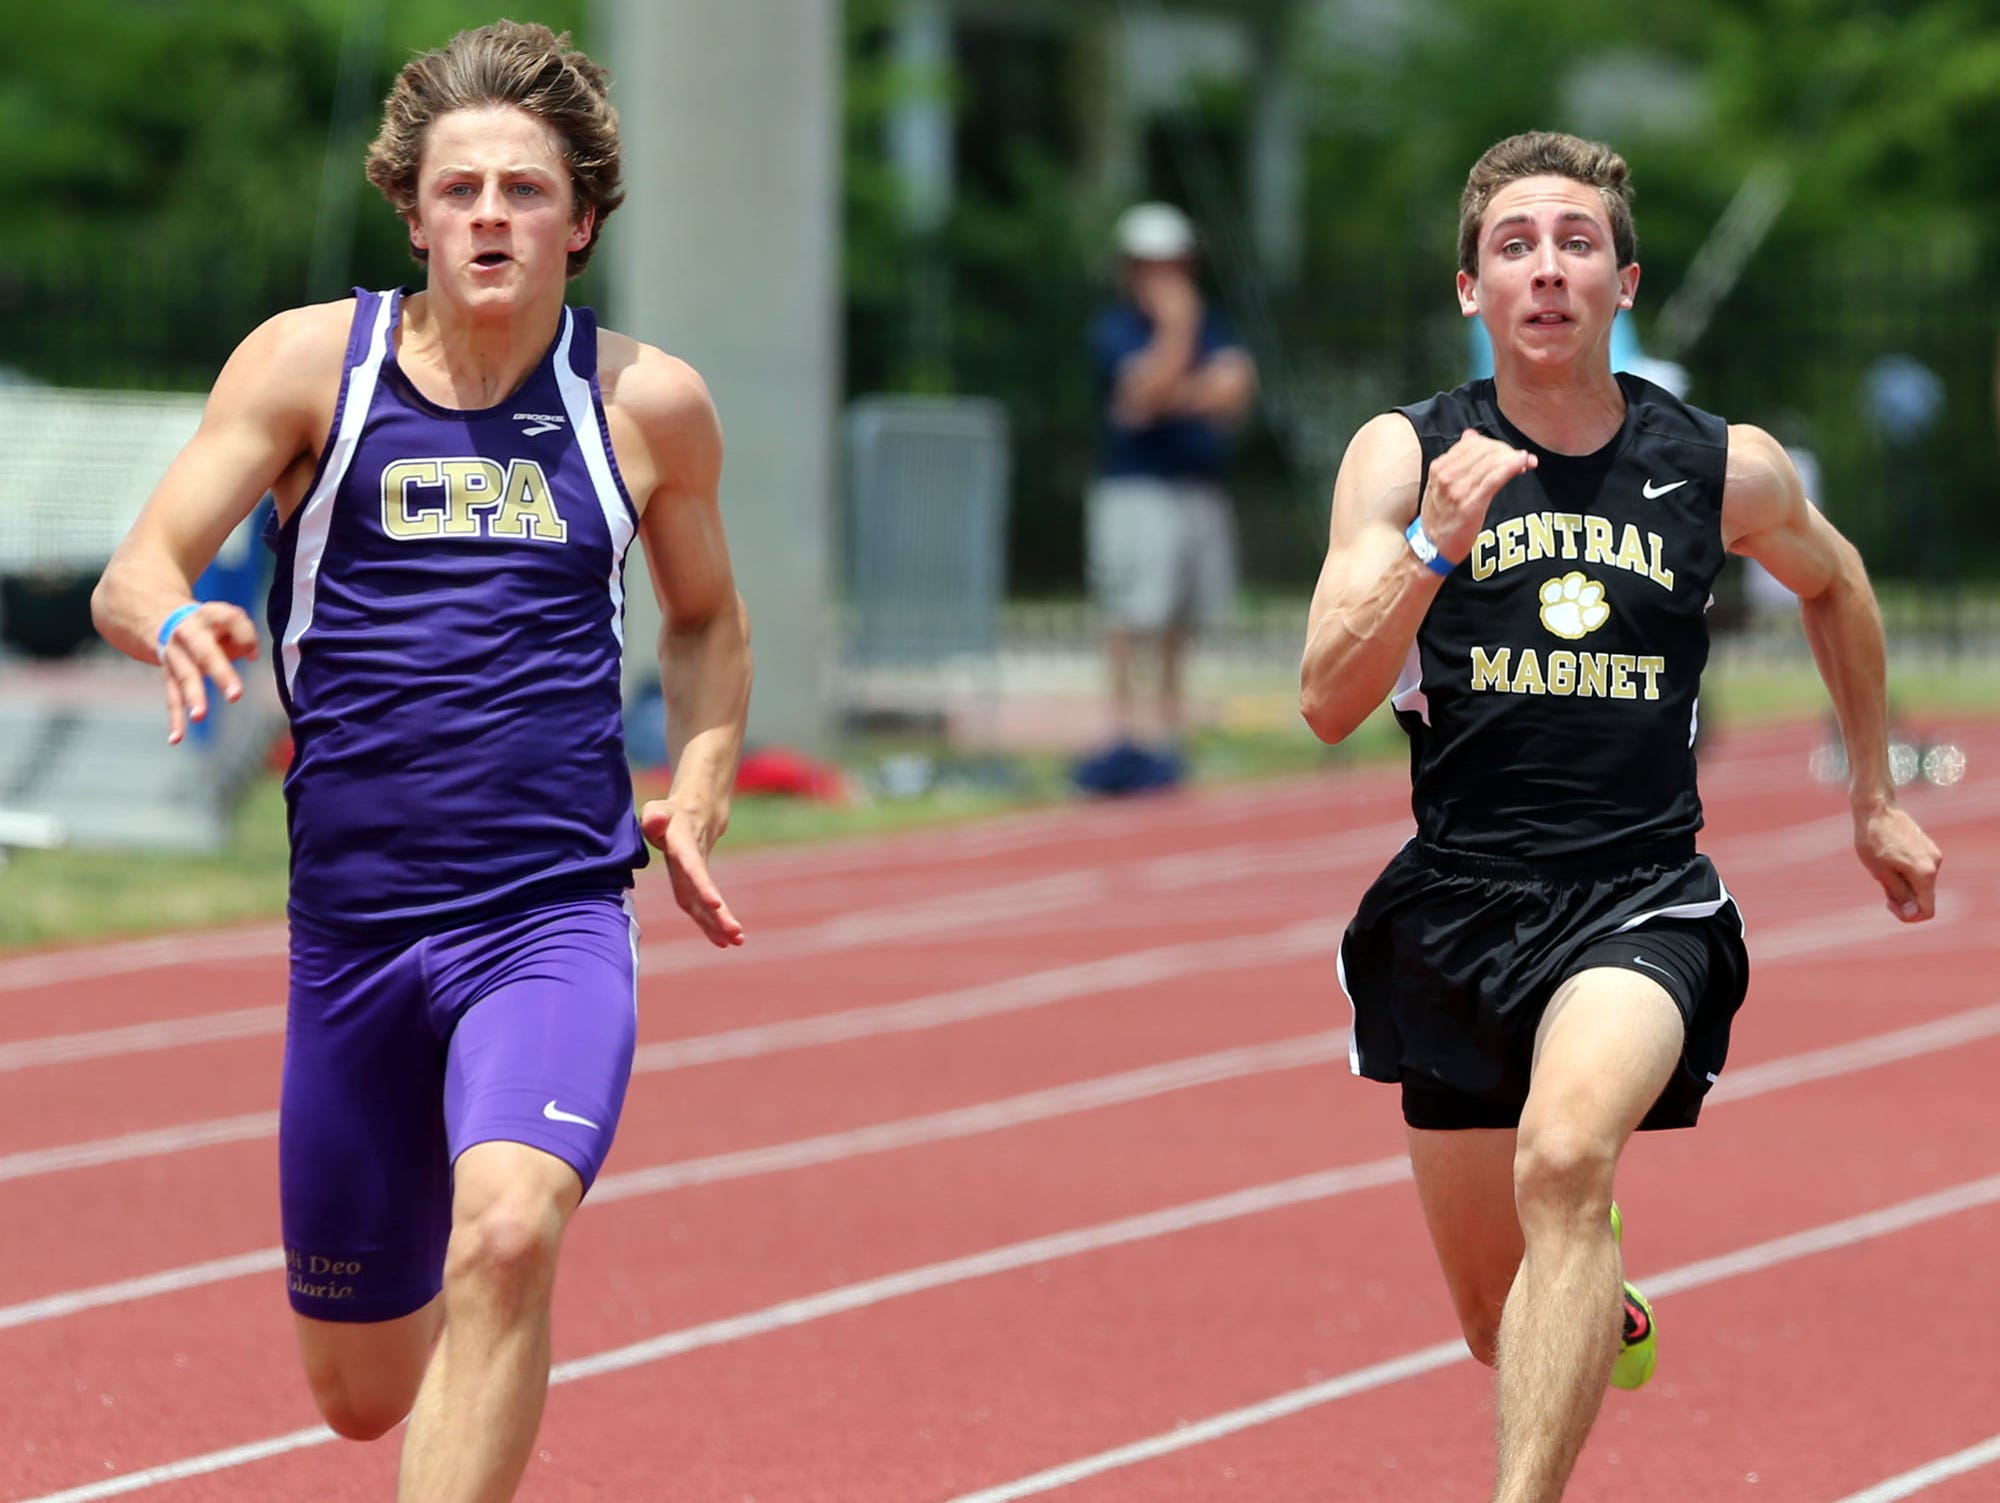 CPA's William Stout, left, and Central Magnet's Ben Waldecker run in the 100-meter dash during the Class A/AA decathlon. Stout took first place.